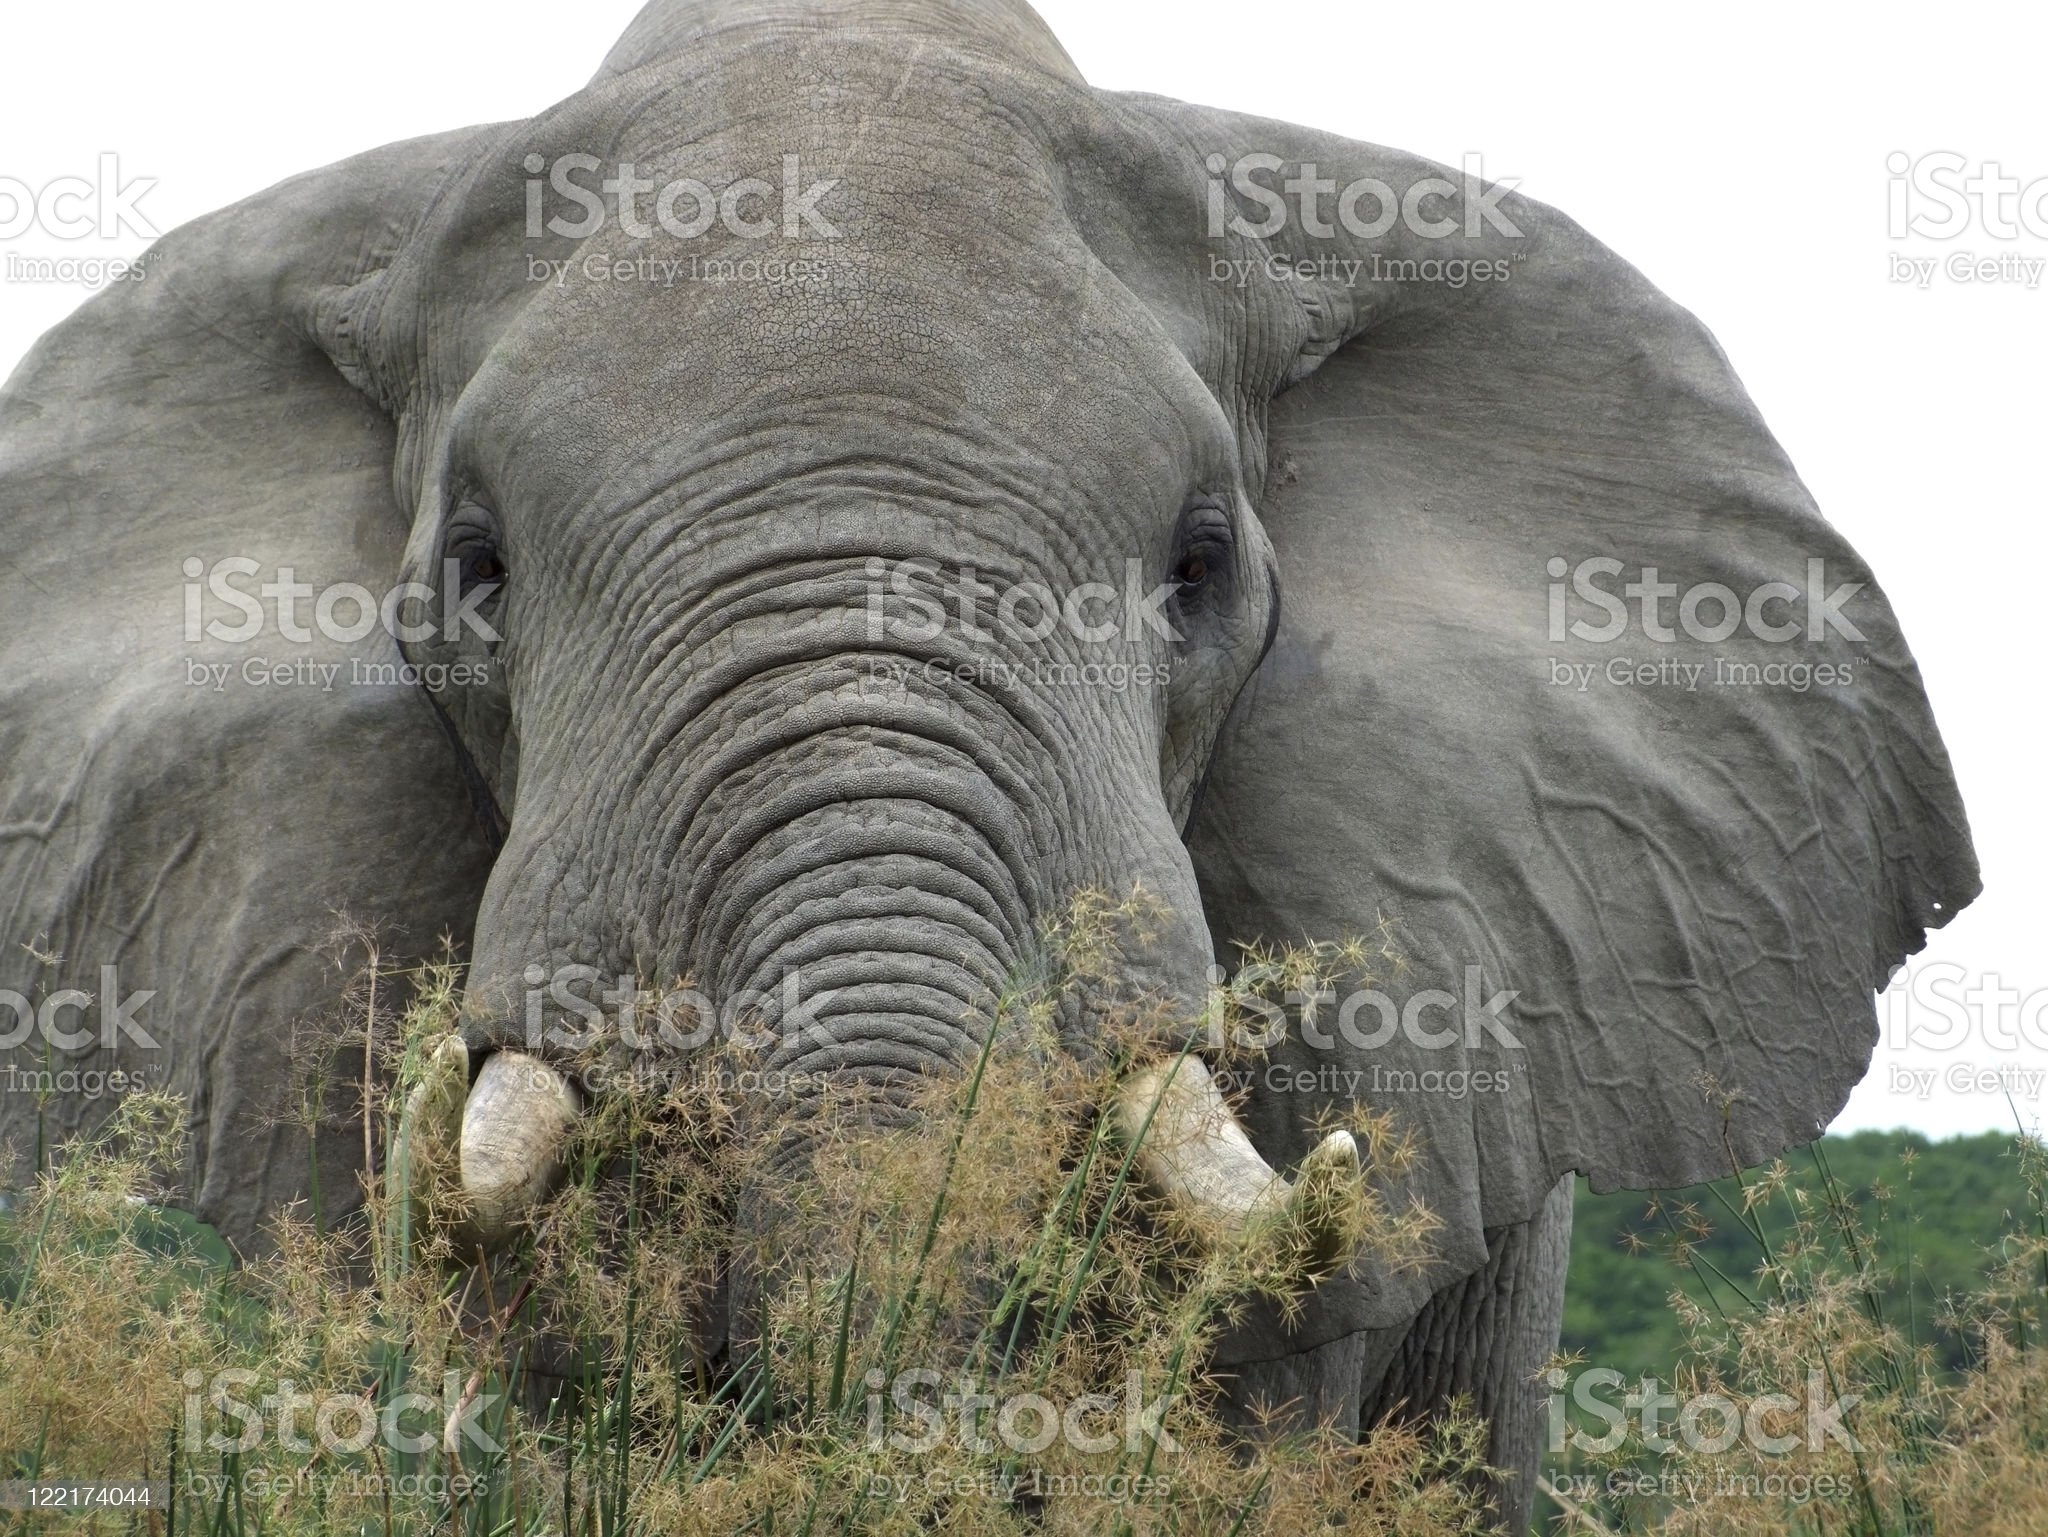 Elephant detail in Africa royalty-free stock photo